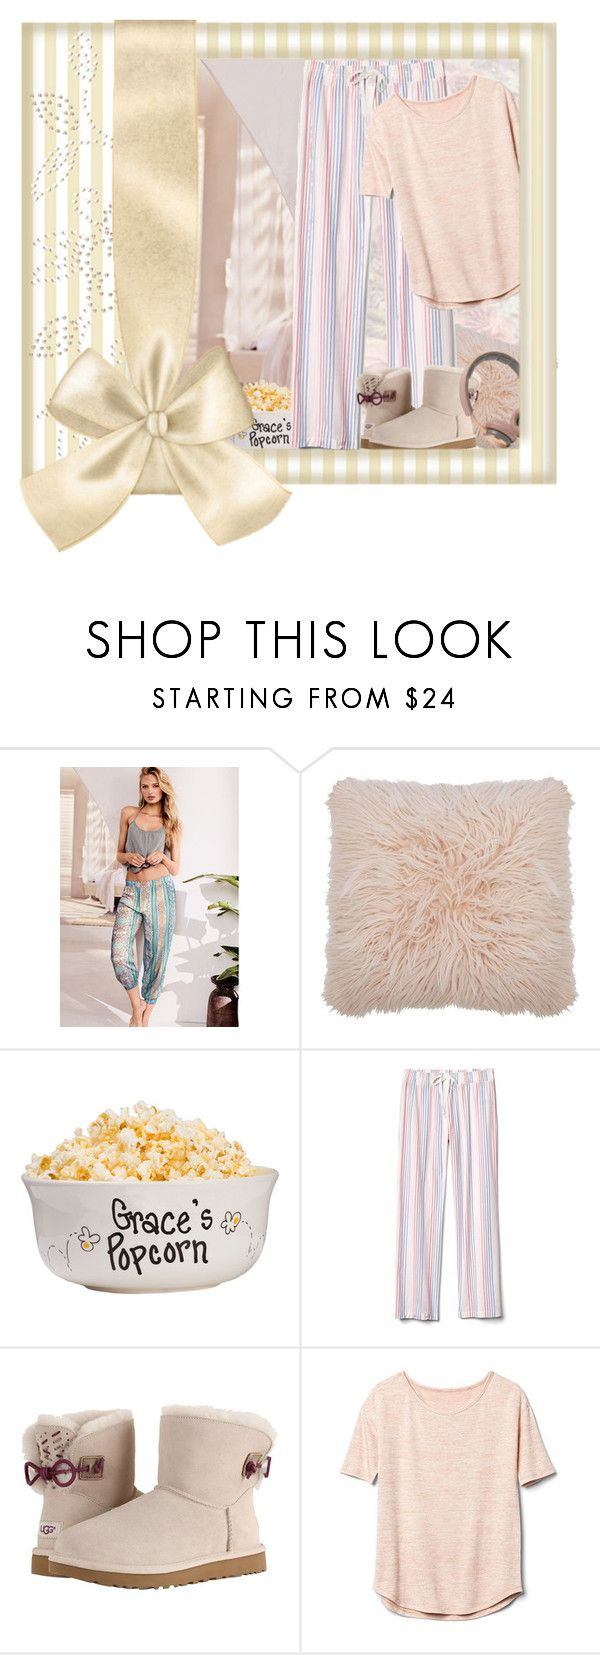 """""""Comfy Pastel Outfit"""" by ladygroovenyc ❤ liked on Polyvore featuring Victoria's Secret, M&Co, Gap, UGG, B&O Play, pastel and pajamas"""